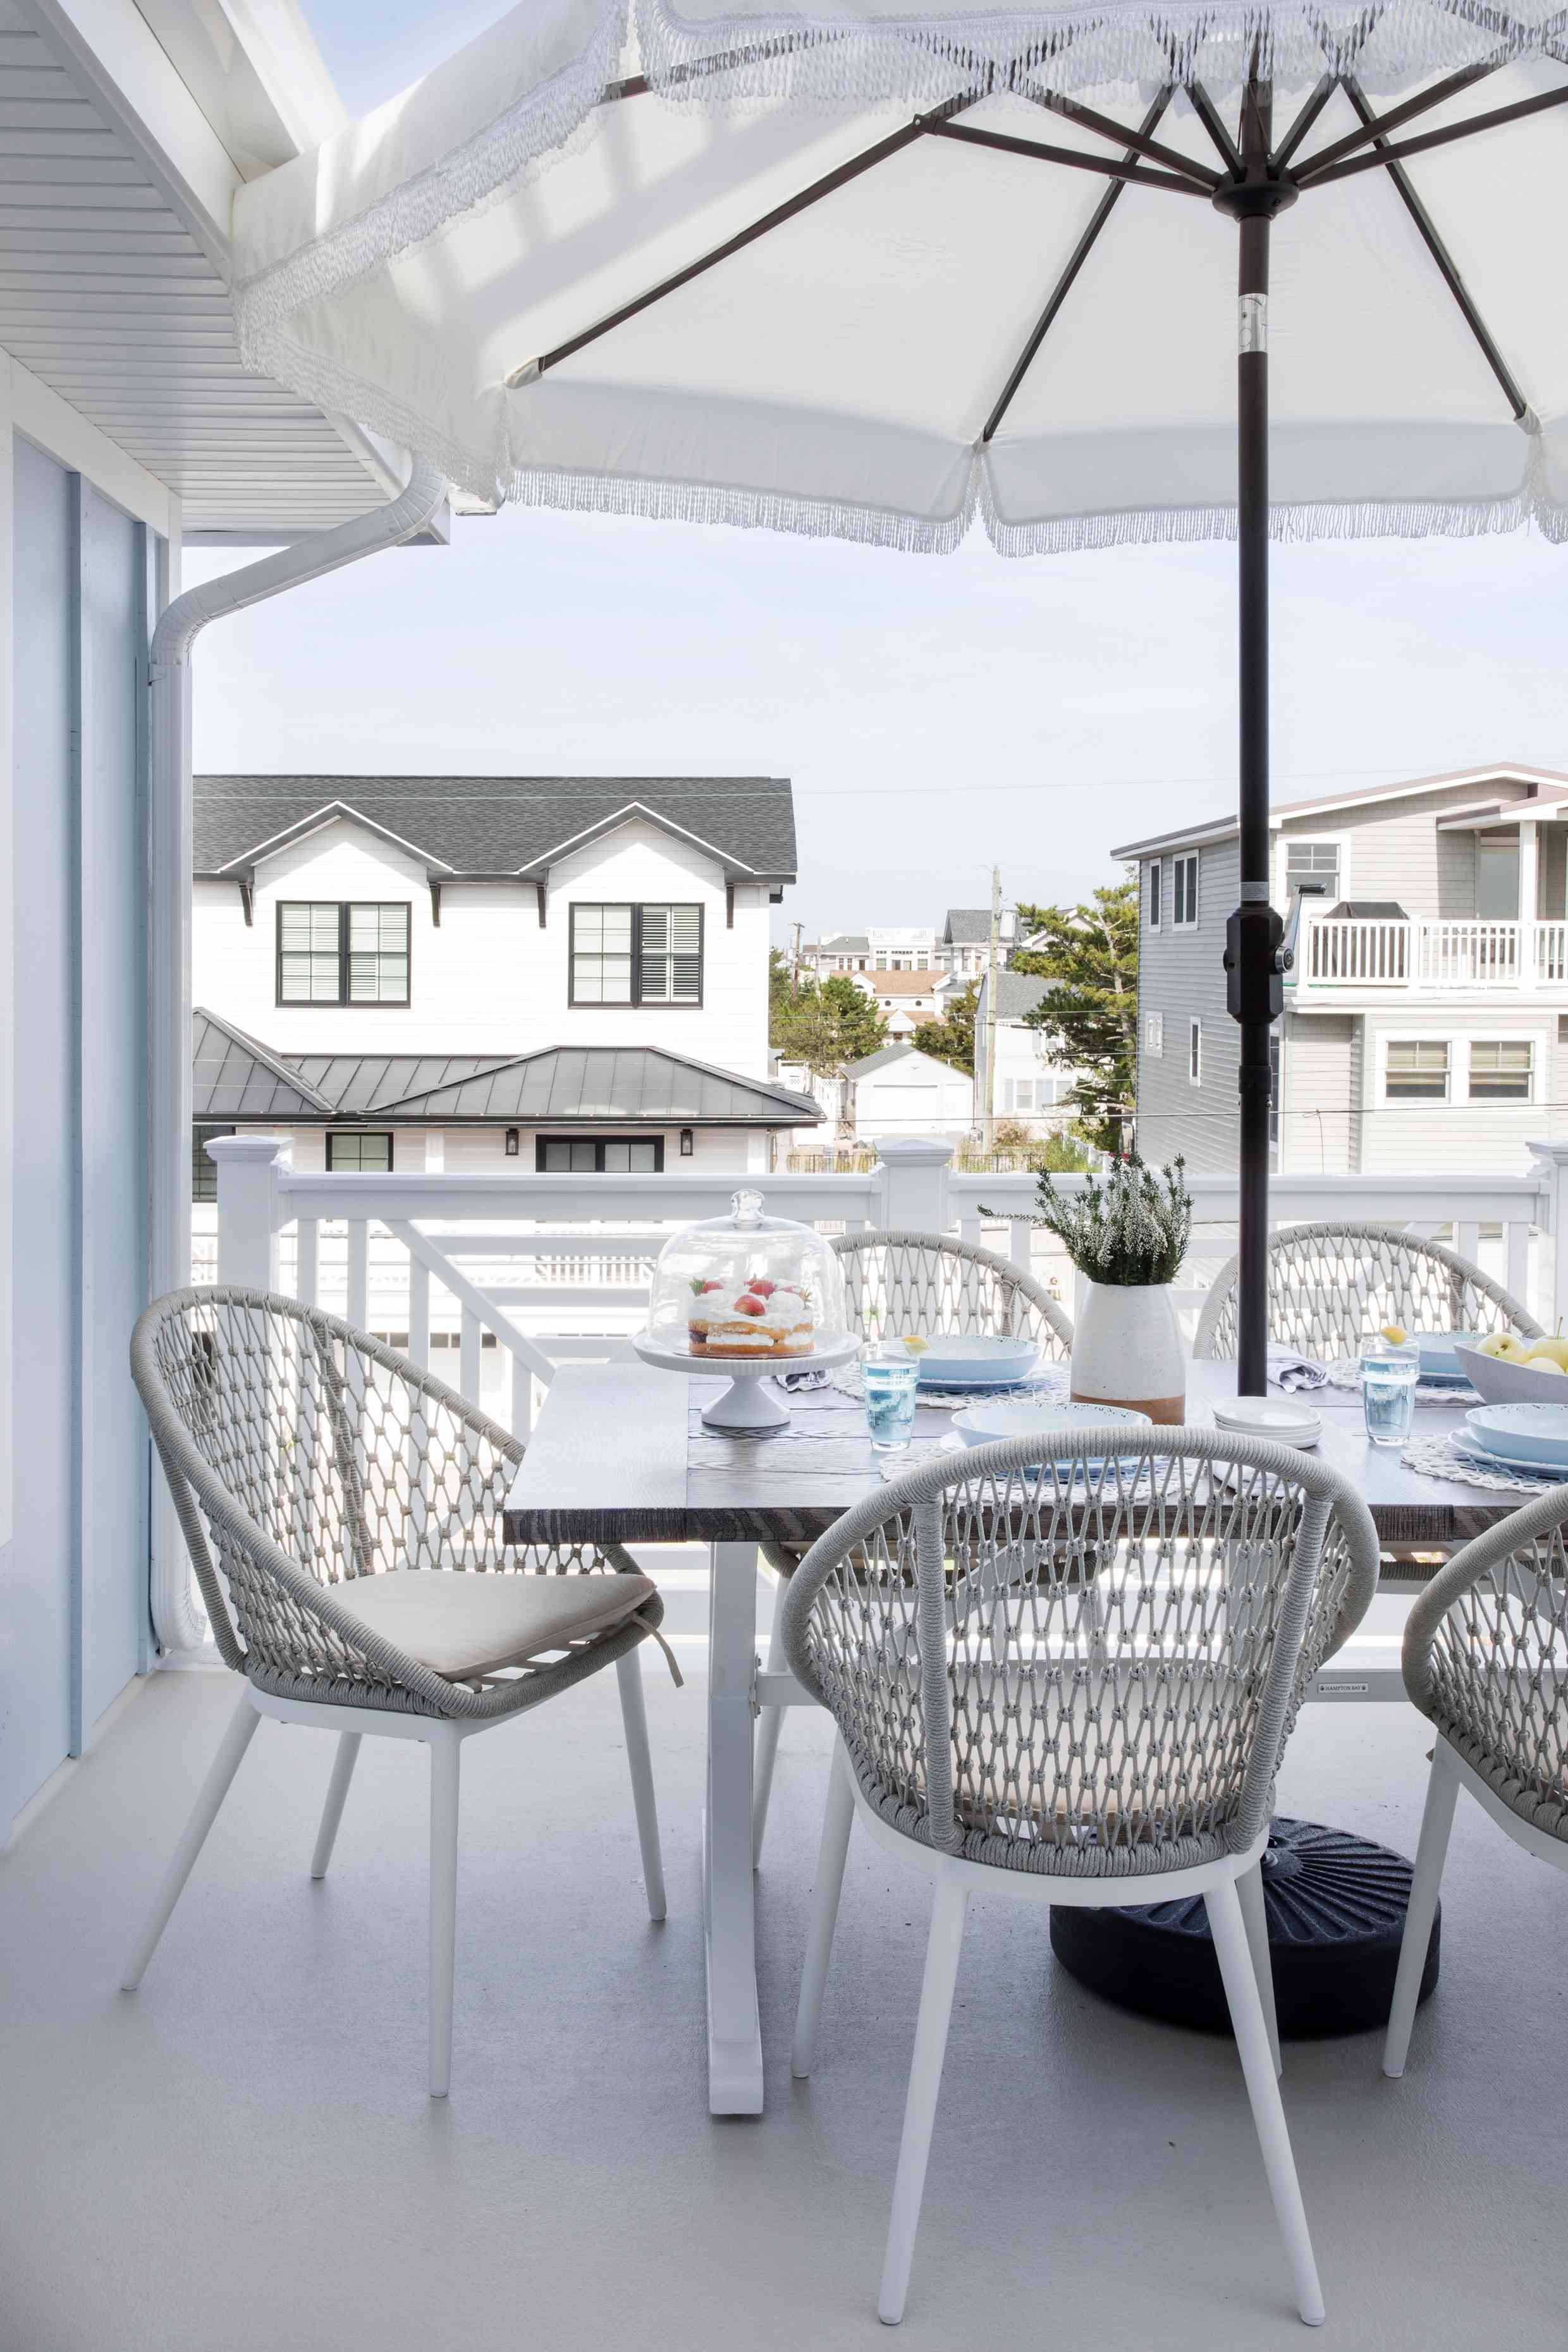 The deck at the Long Beach Island home of Karen B. Wolfe